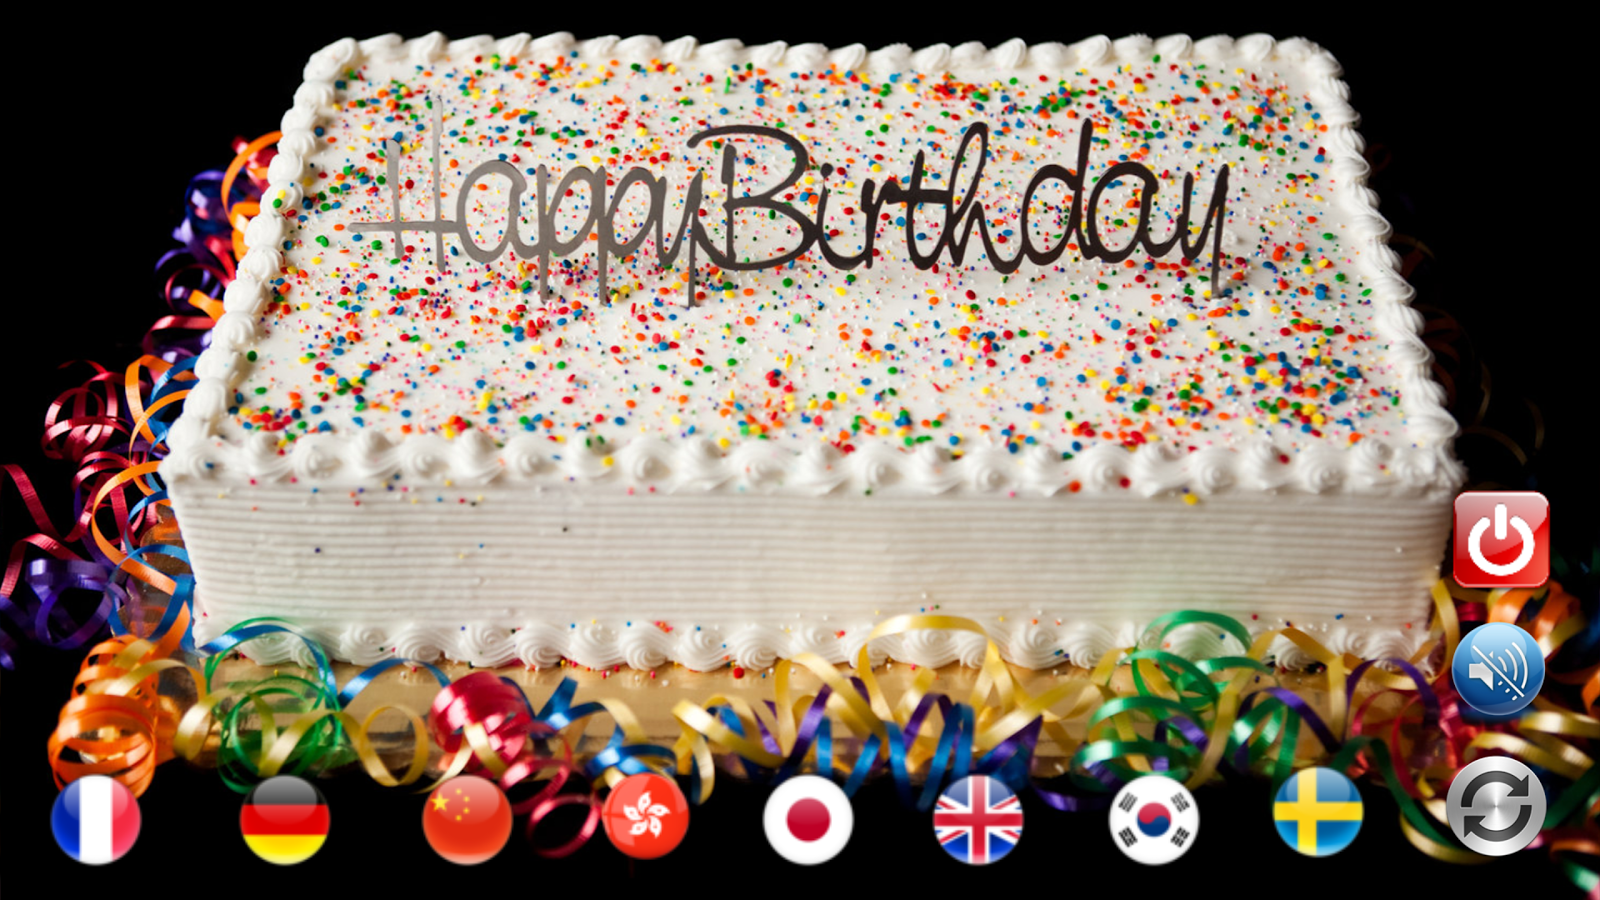 Happy Birthday Song  Android Apps On Google Play - Cake happy birthday song